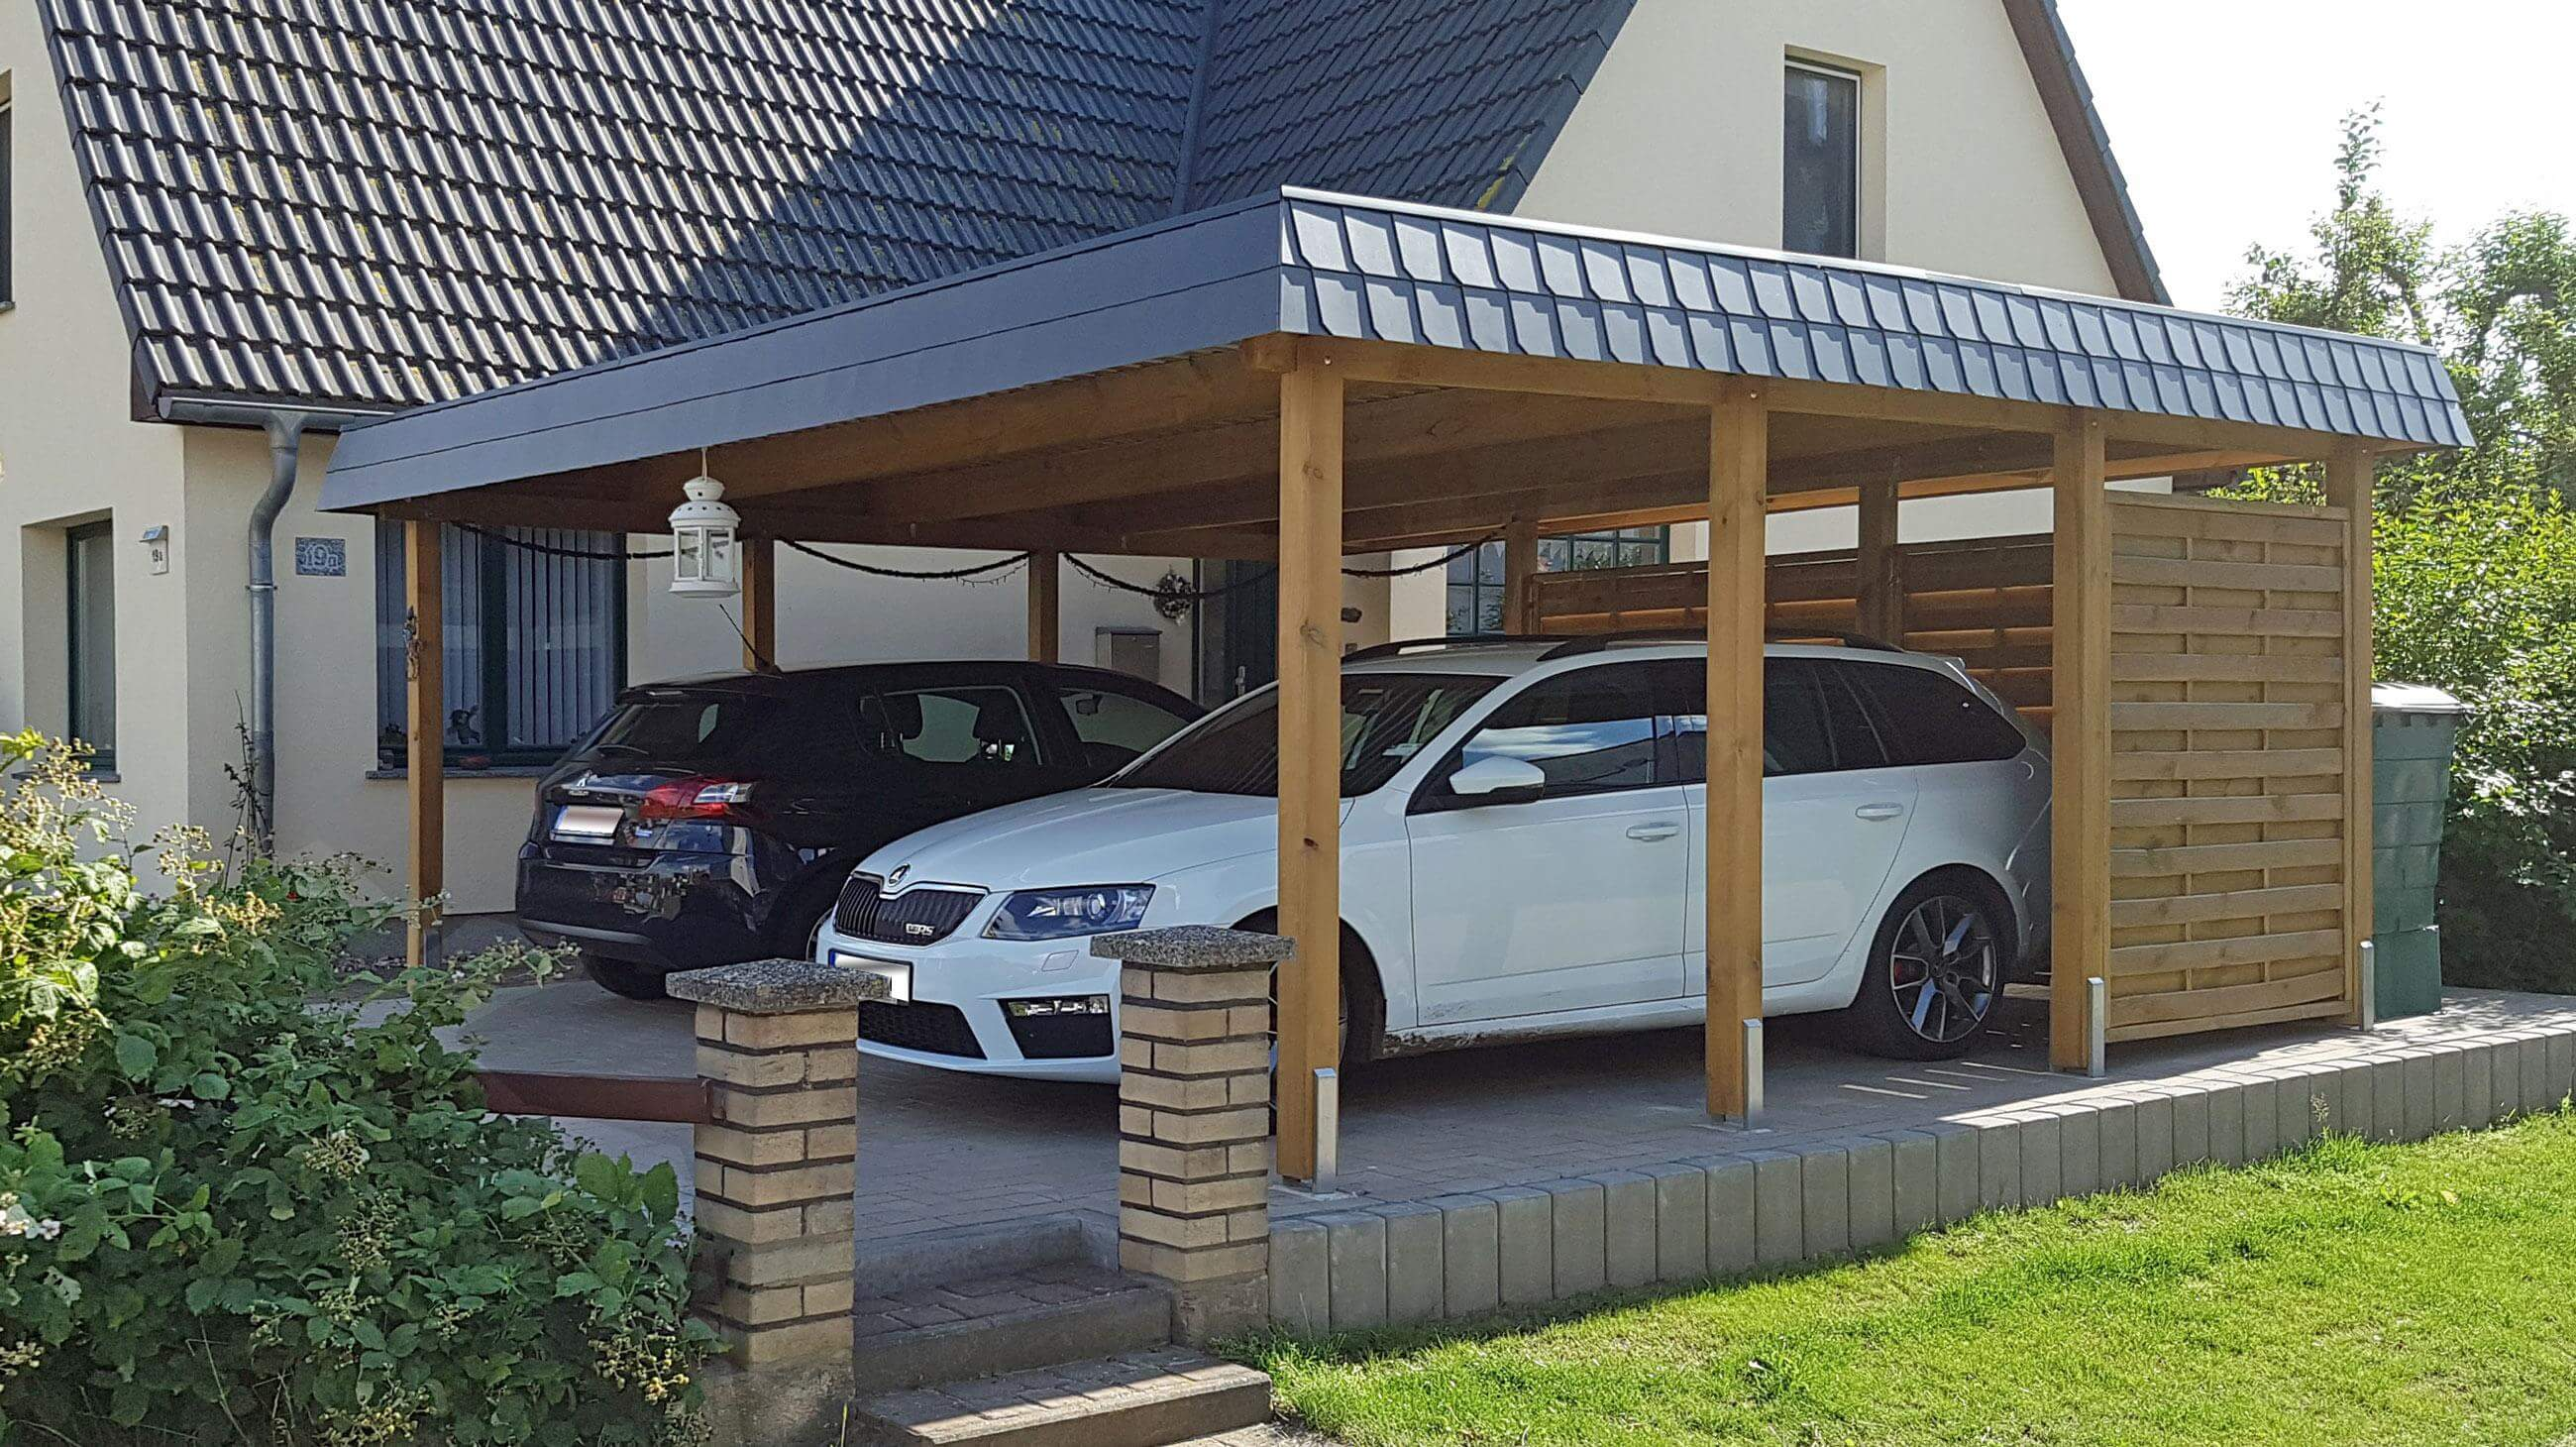 flachdach doppelcarport mit schindelblende news detail br ning carport. Black Bedroom Furniture Sets. Home Design Ideas